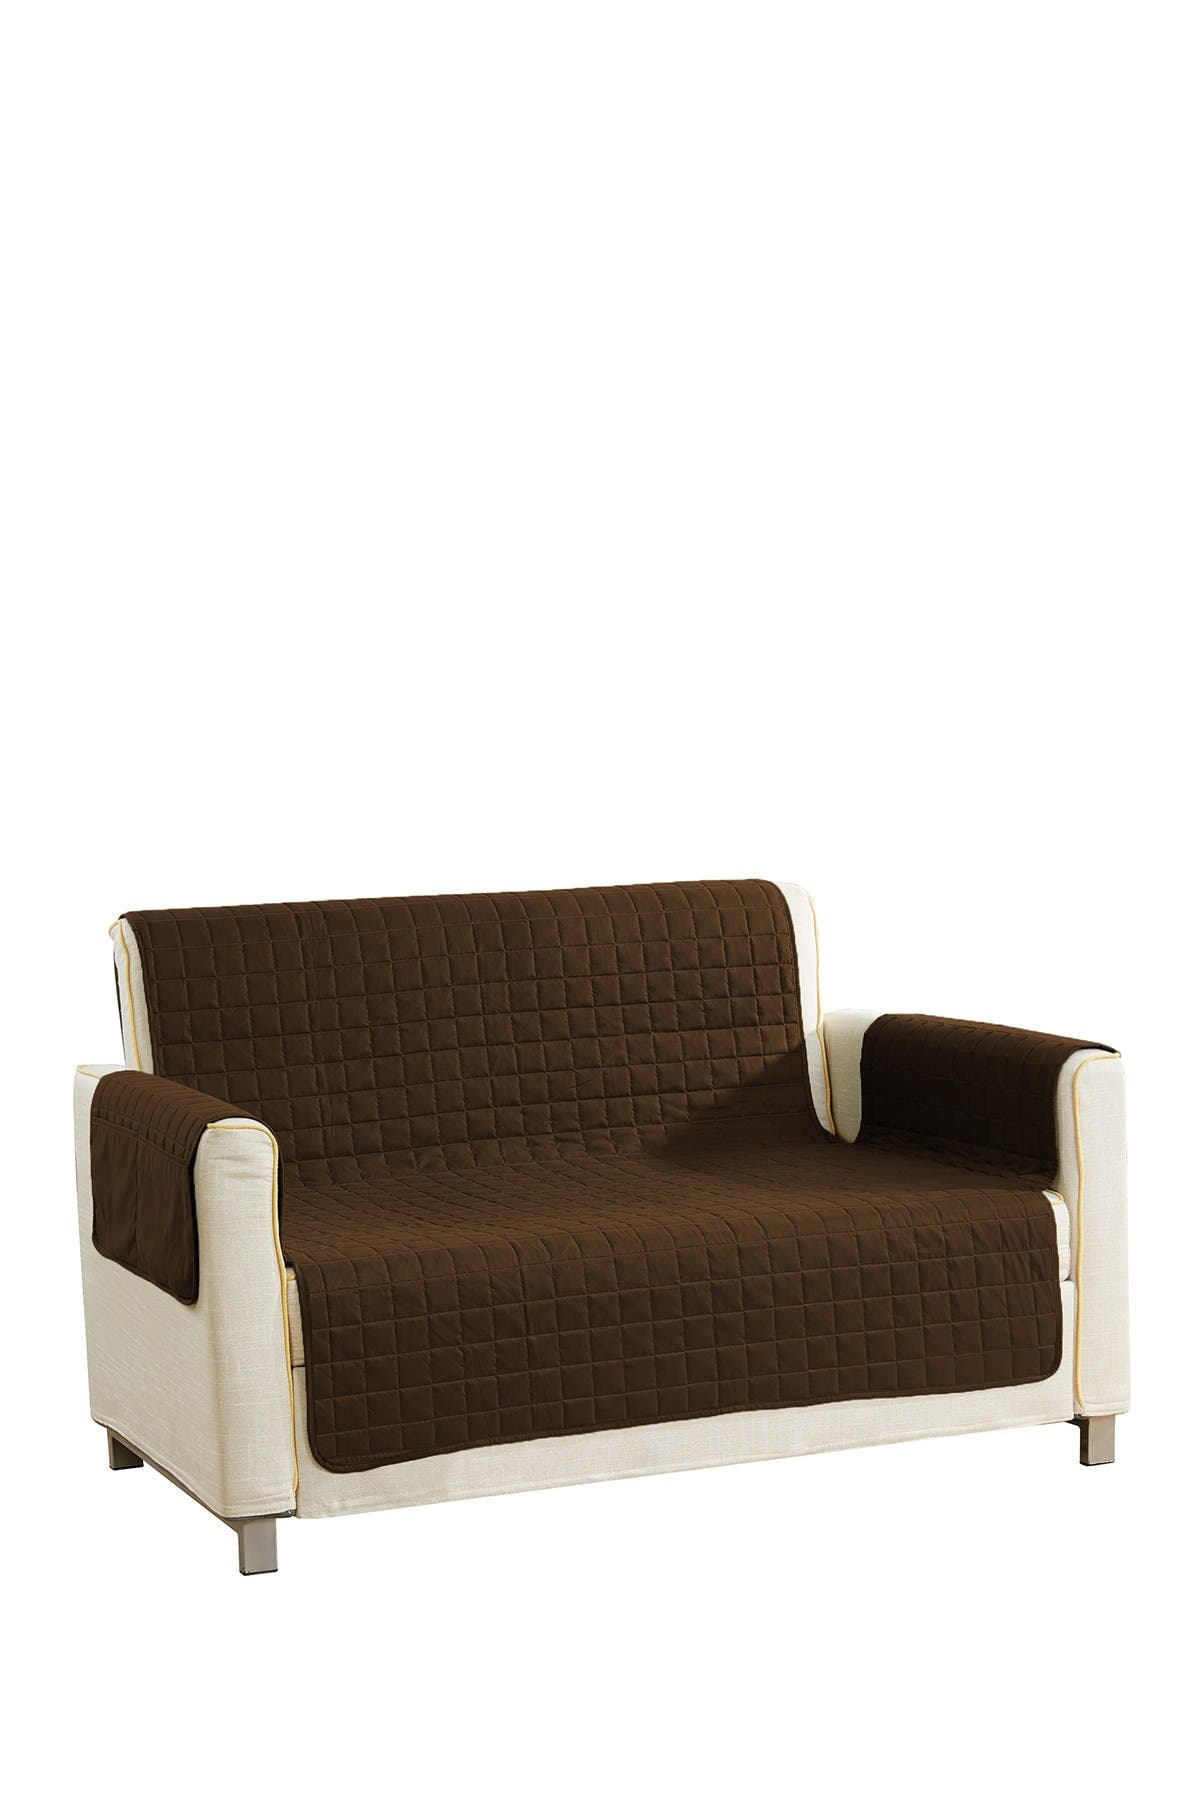 Image of Duck River Textile Brown Ashmont Home Reversible Waterproof Microfiber Loveseat Cover